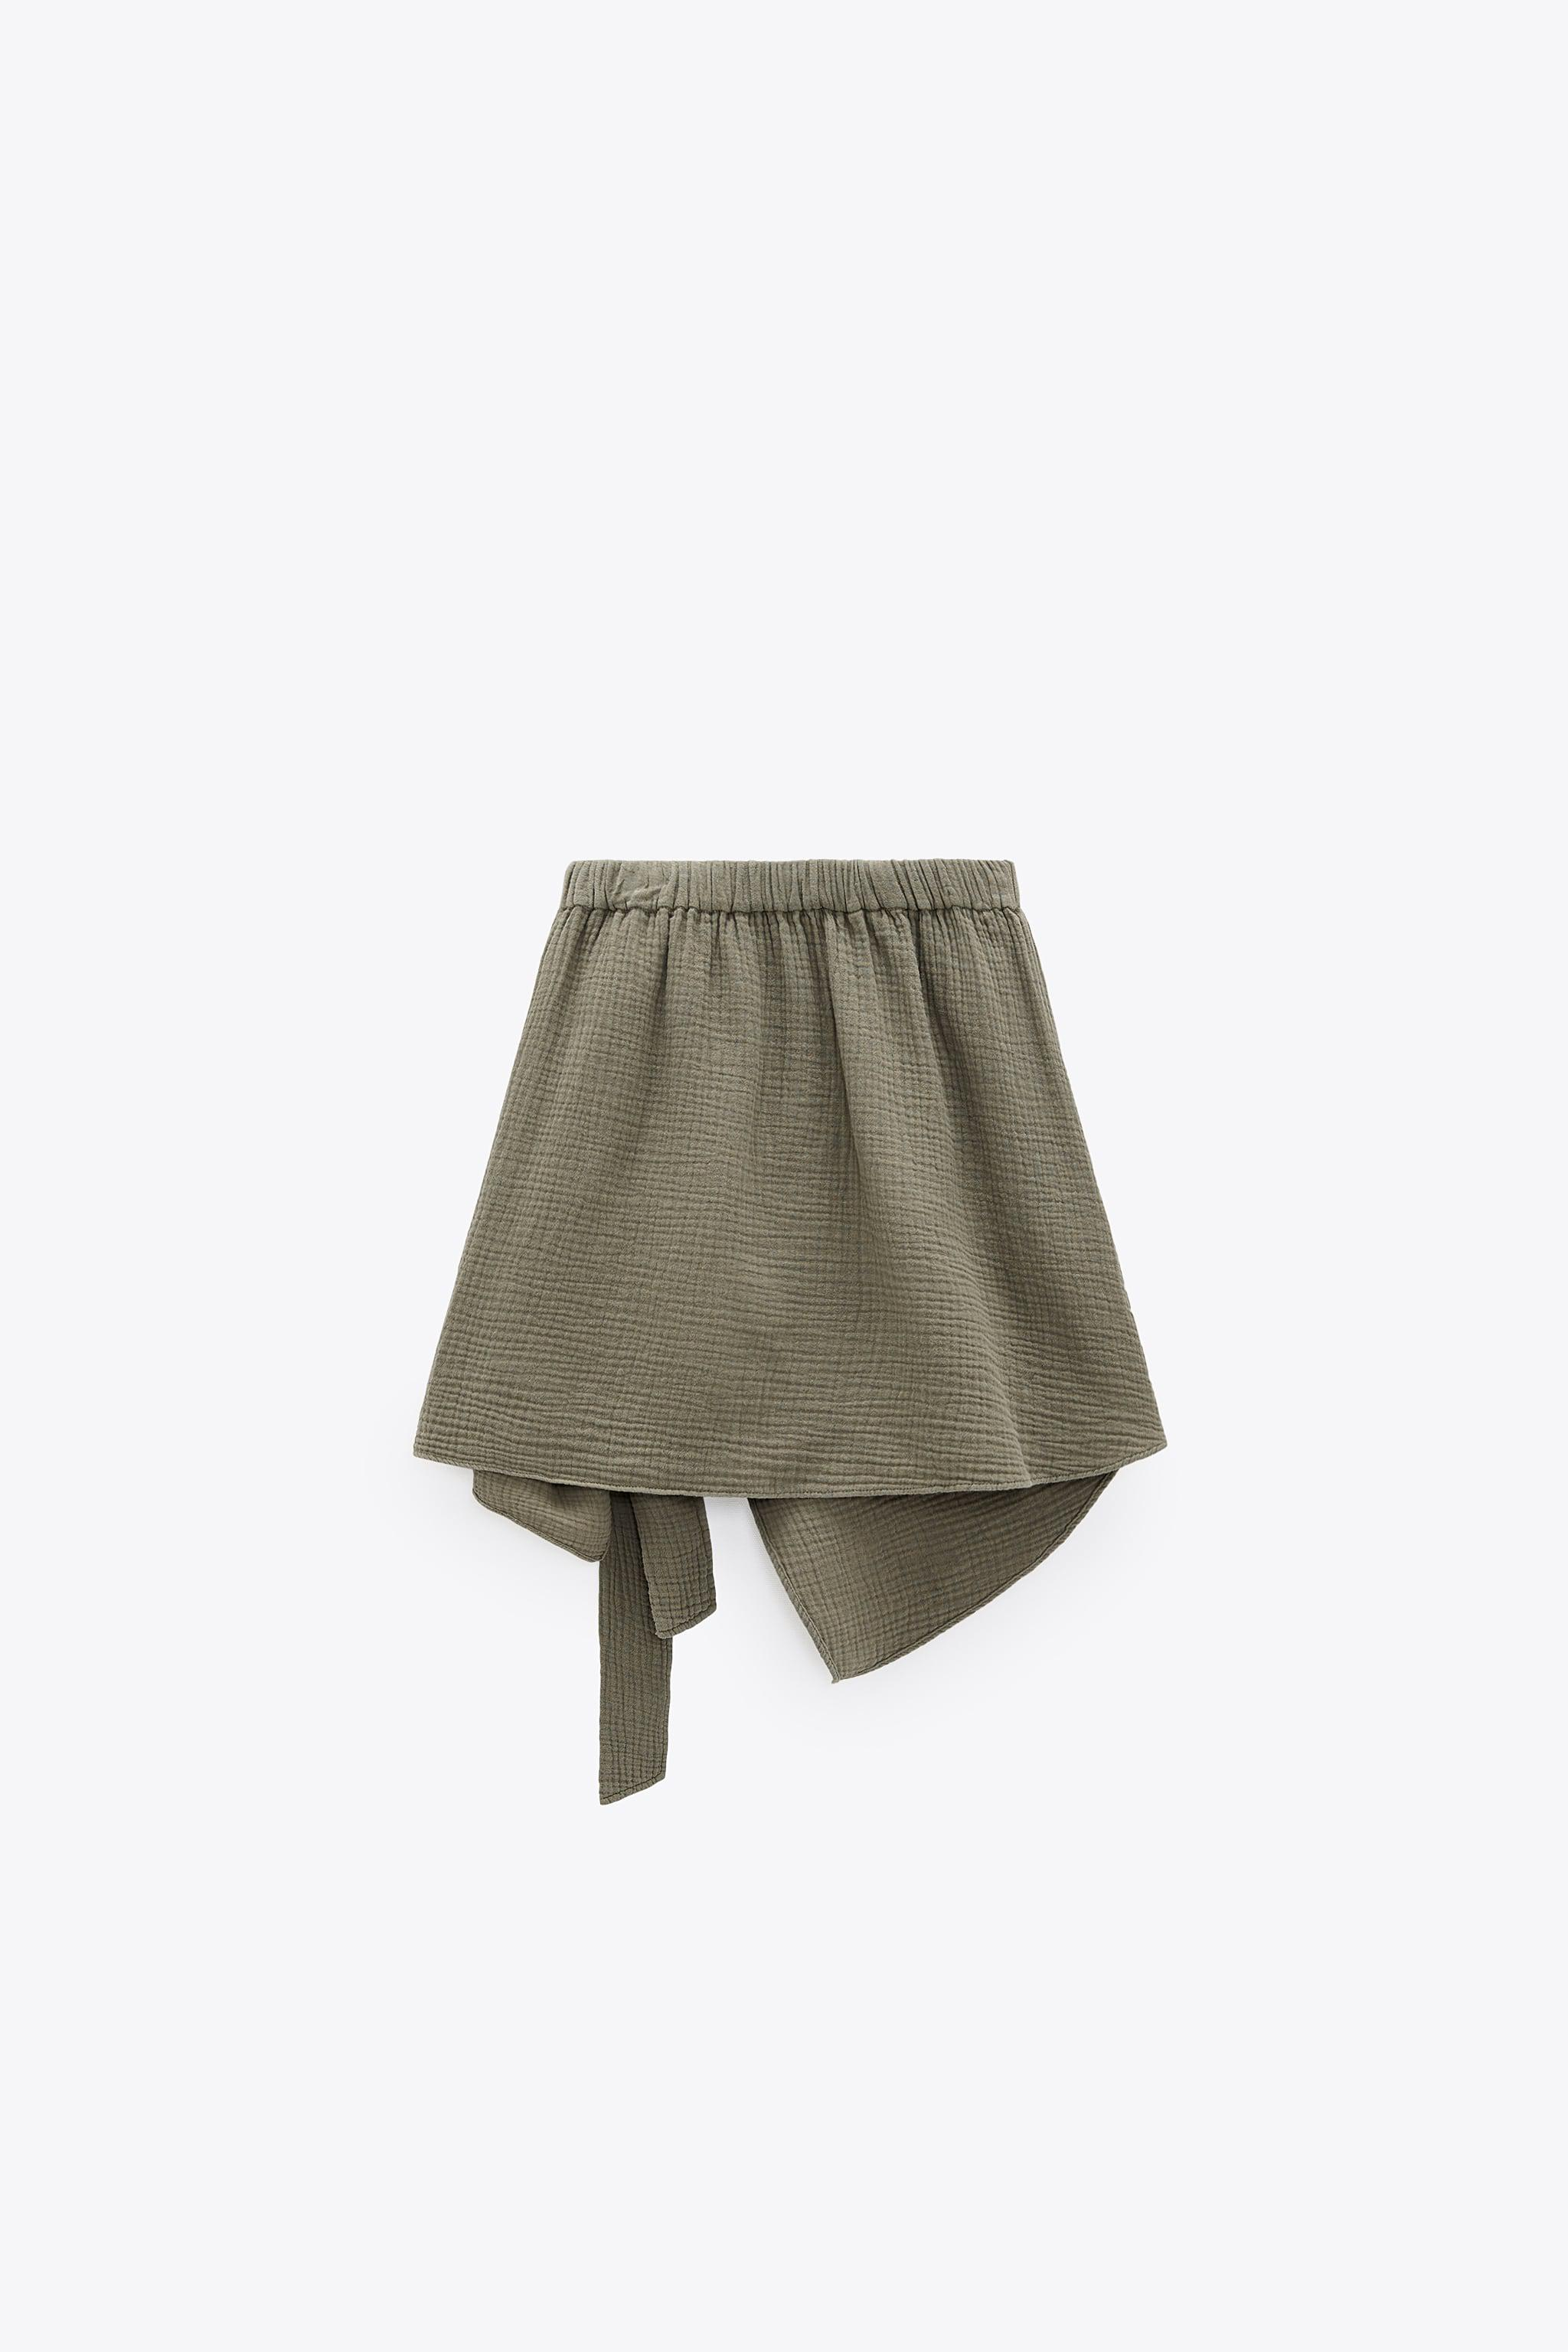 SOFT KNOTTED SKIRT 5